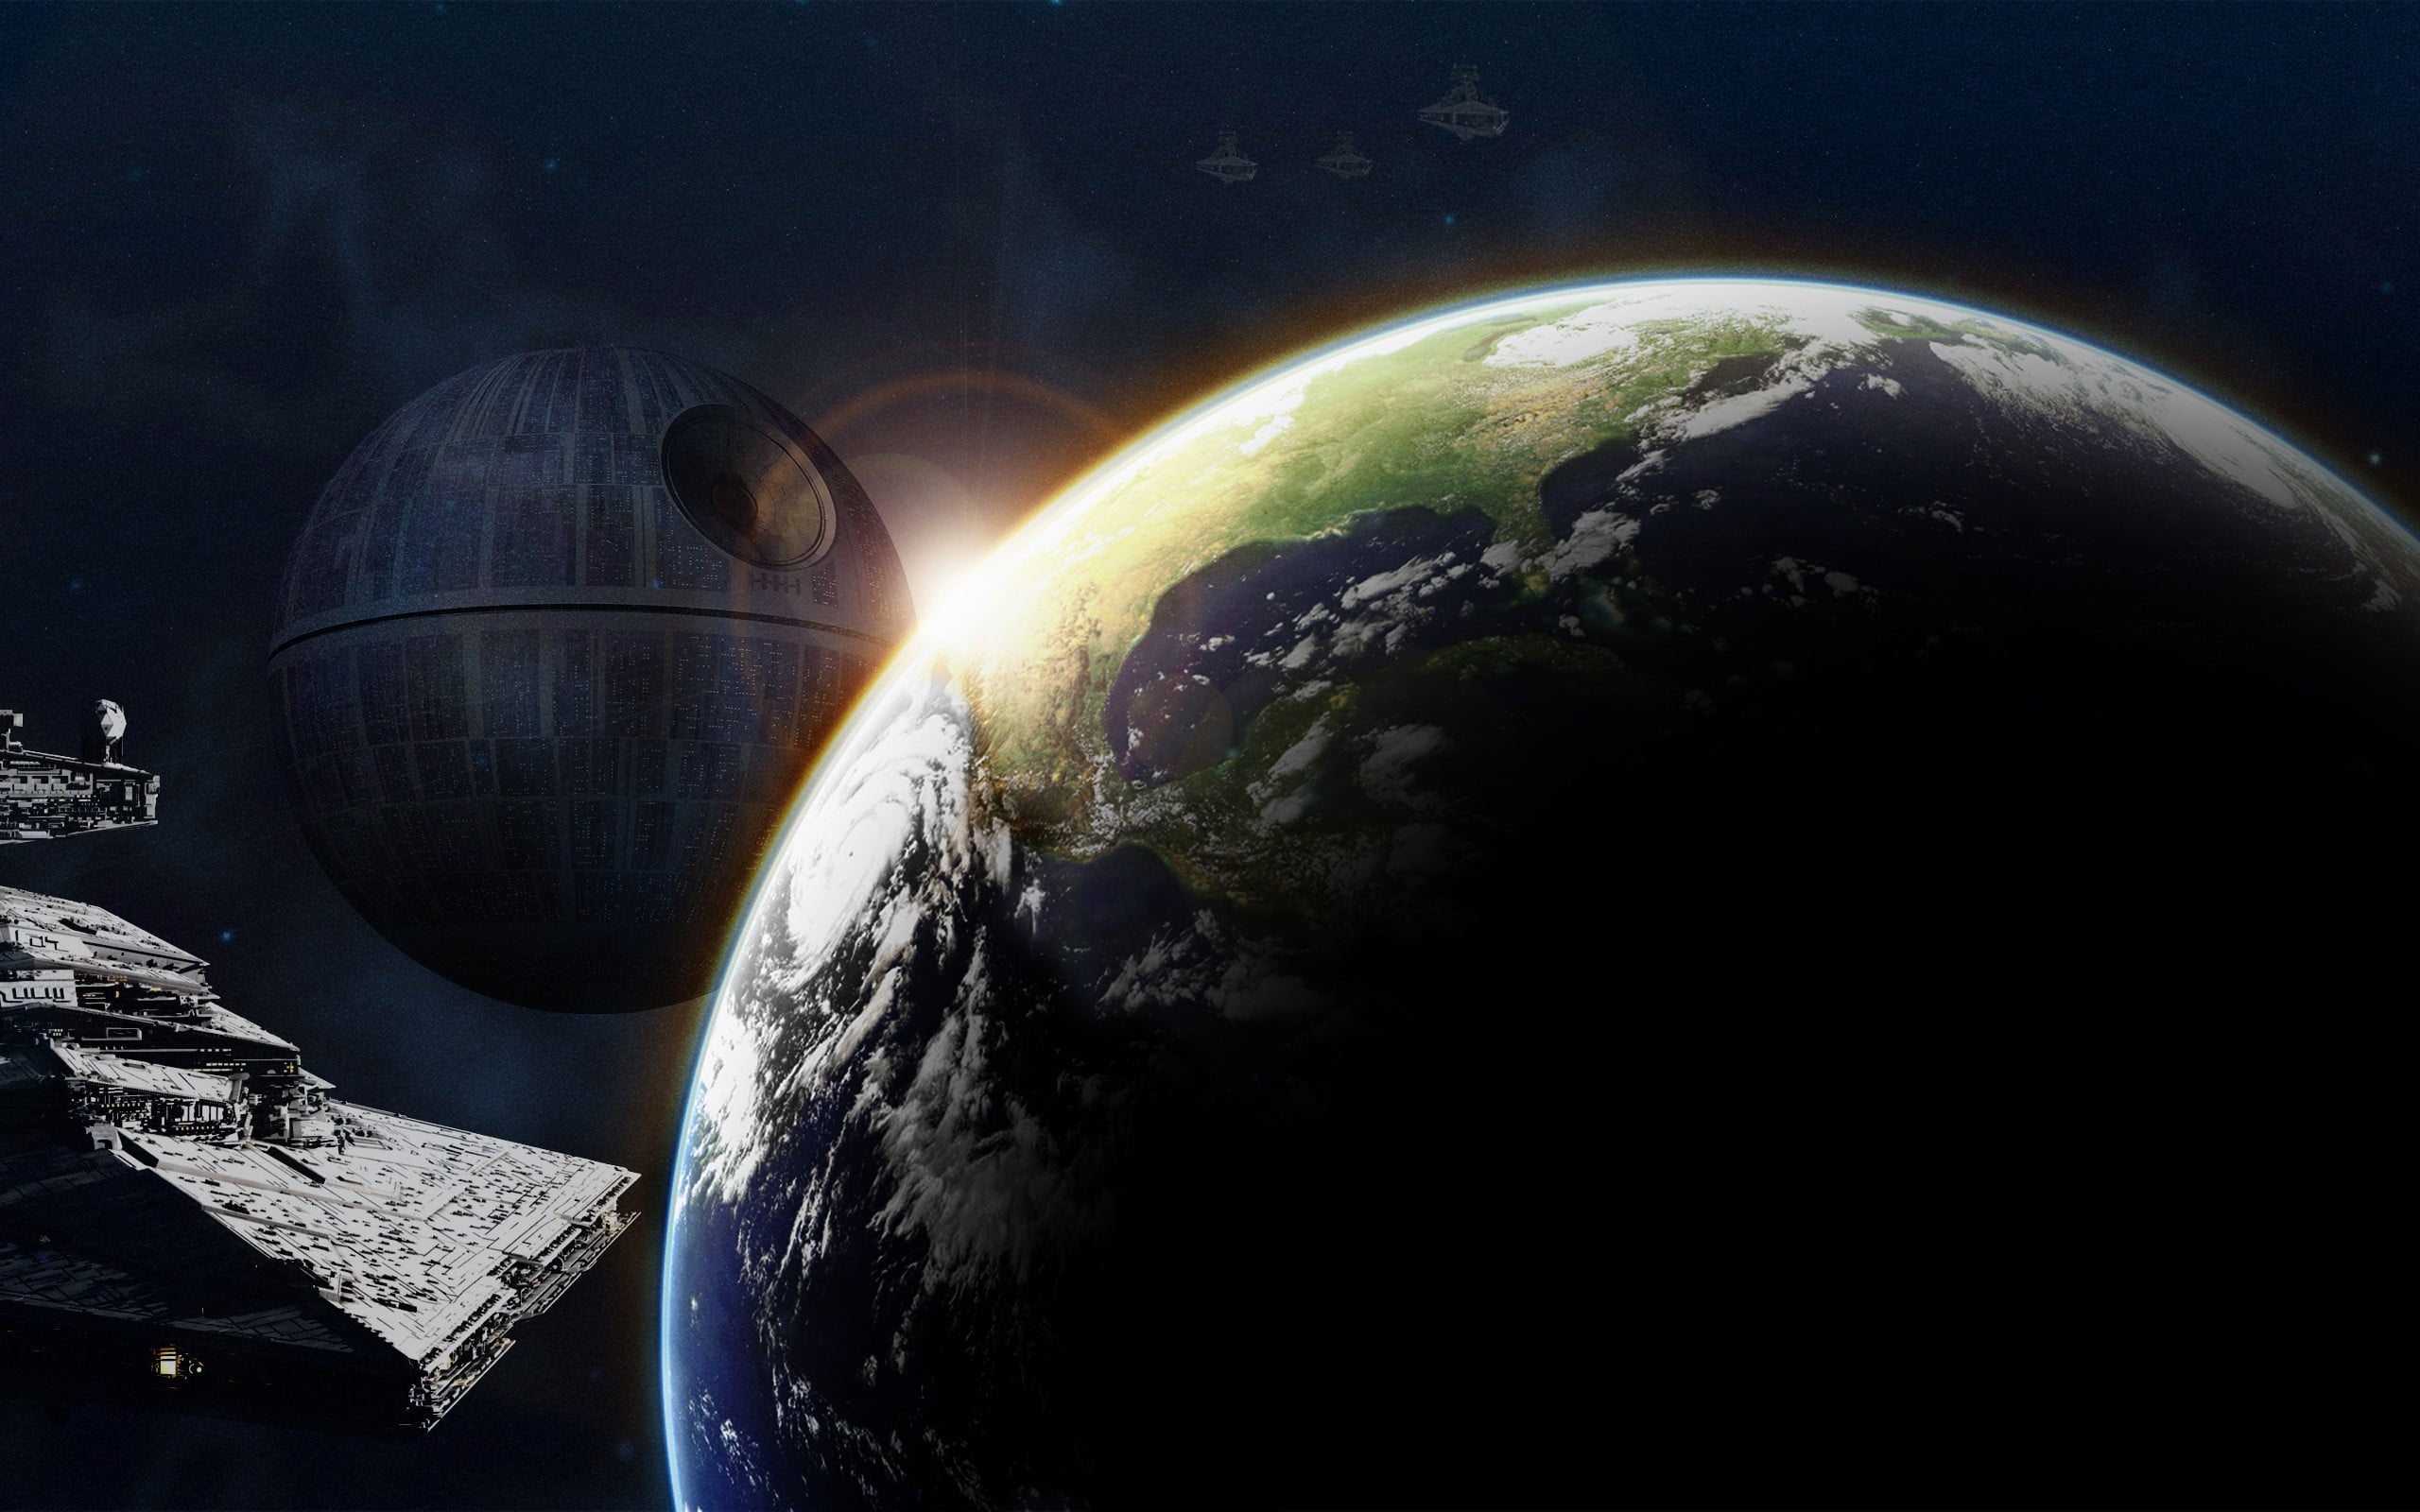 Black And White Ceramic Bowl, Star Wars, Earth, Space - Michael Jackson And World , HD Wallpaper & Backgrounds